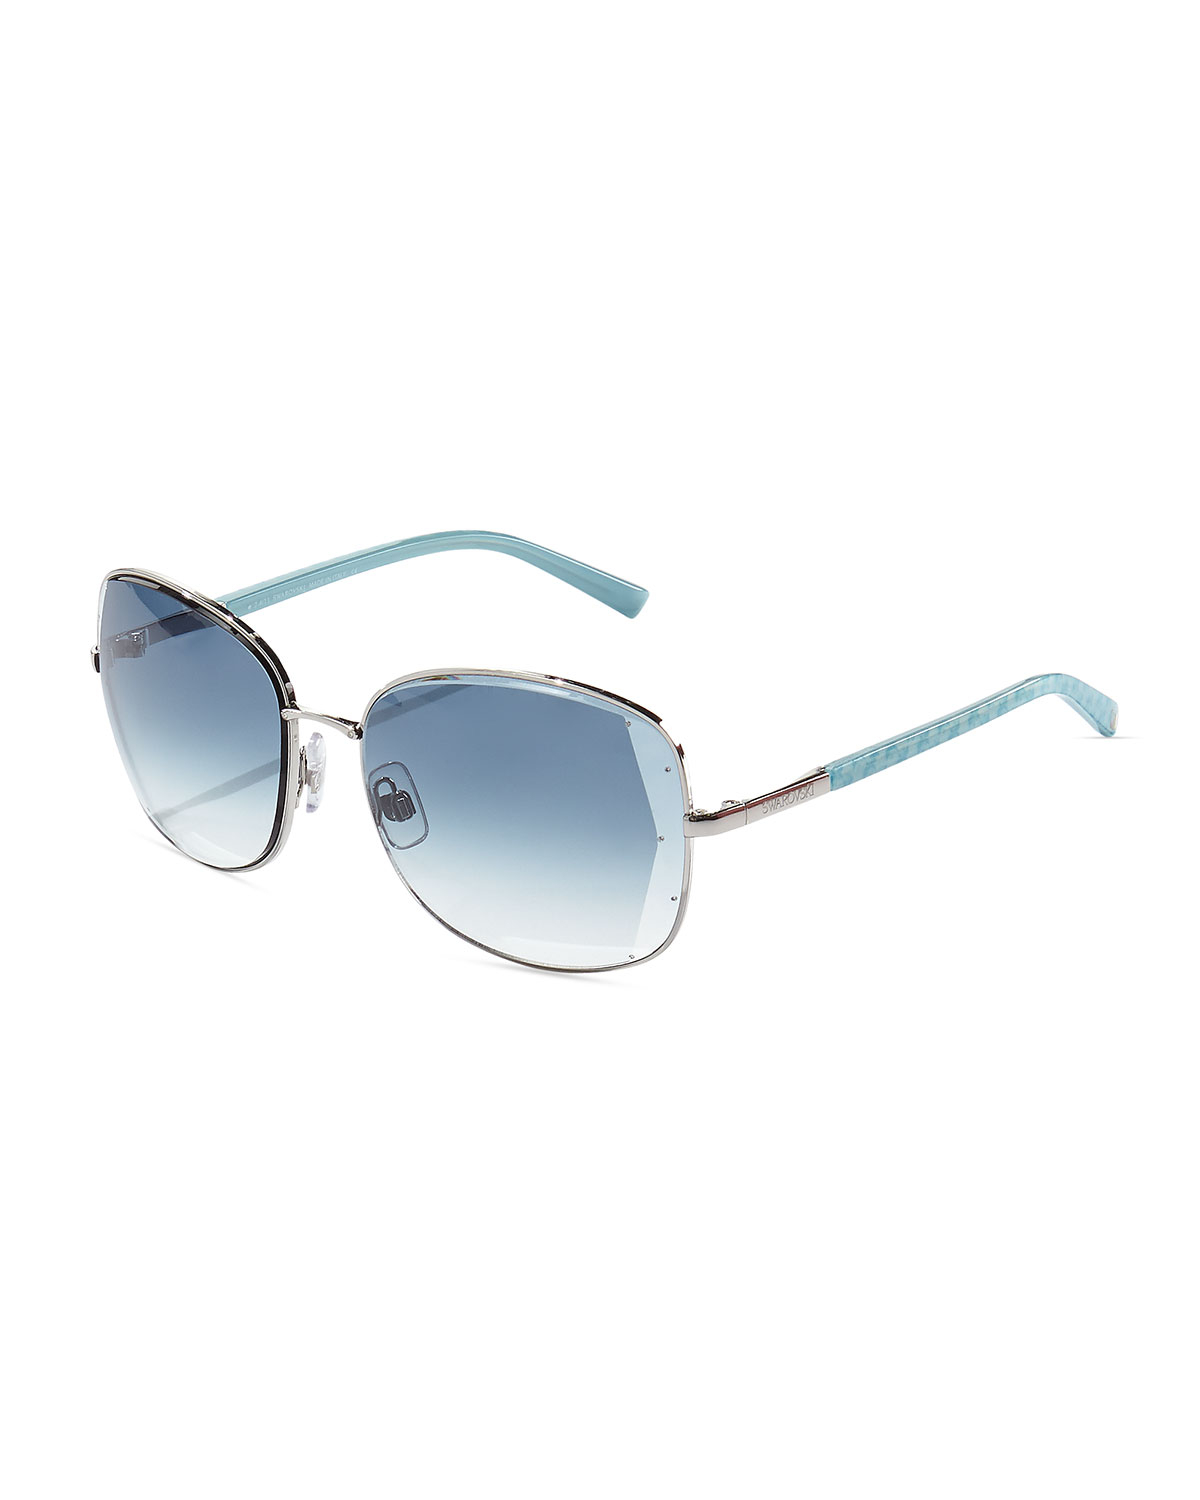 swarovski beveledlenses square sunglasses in blue for men